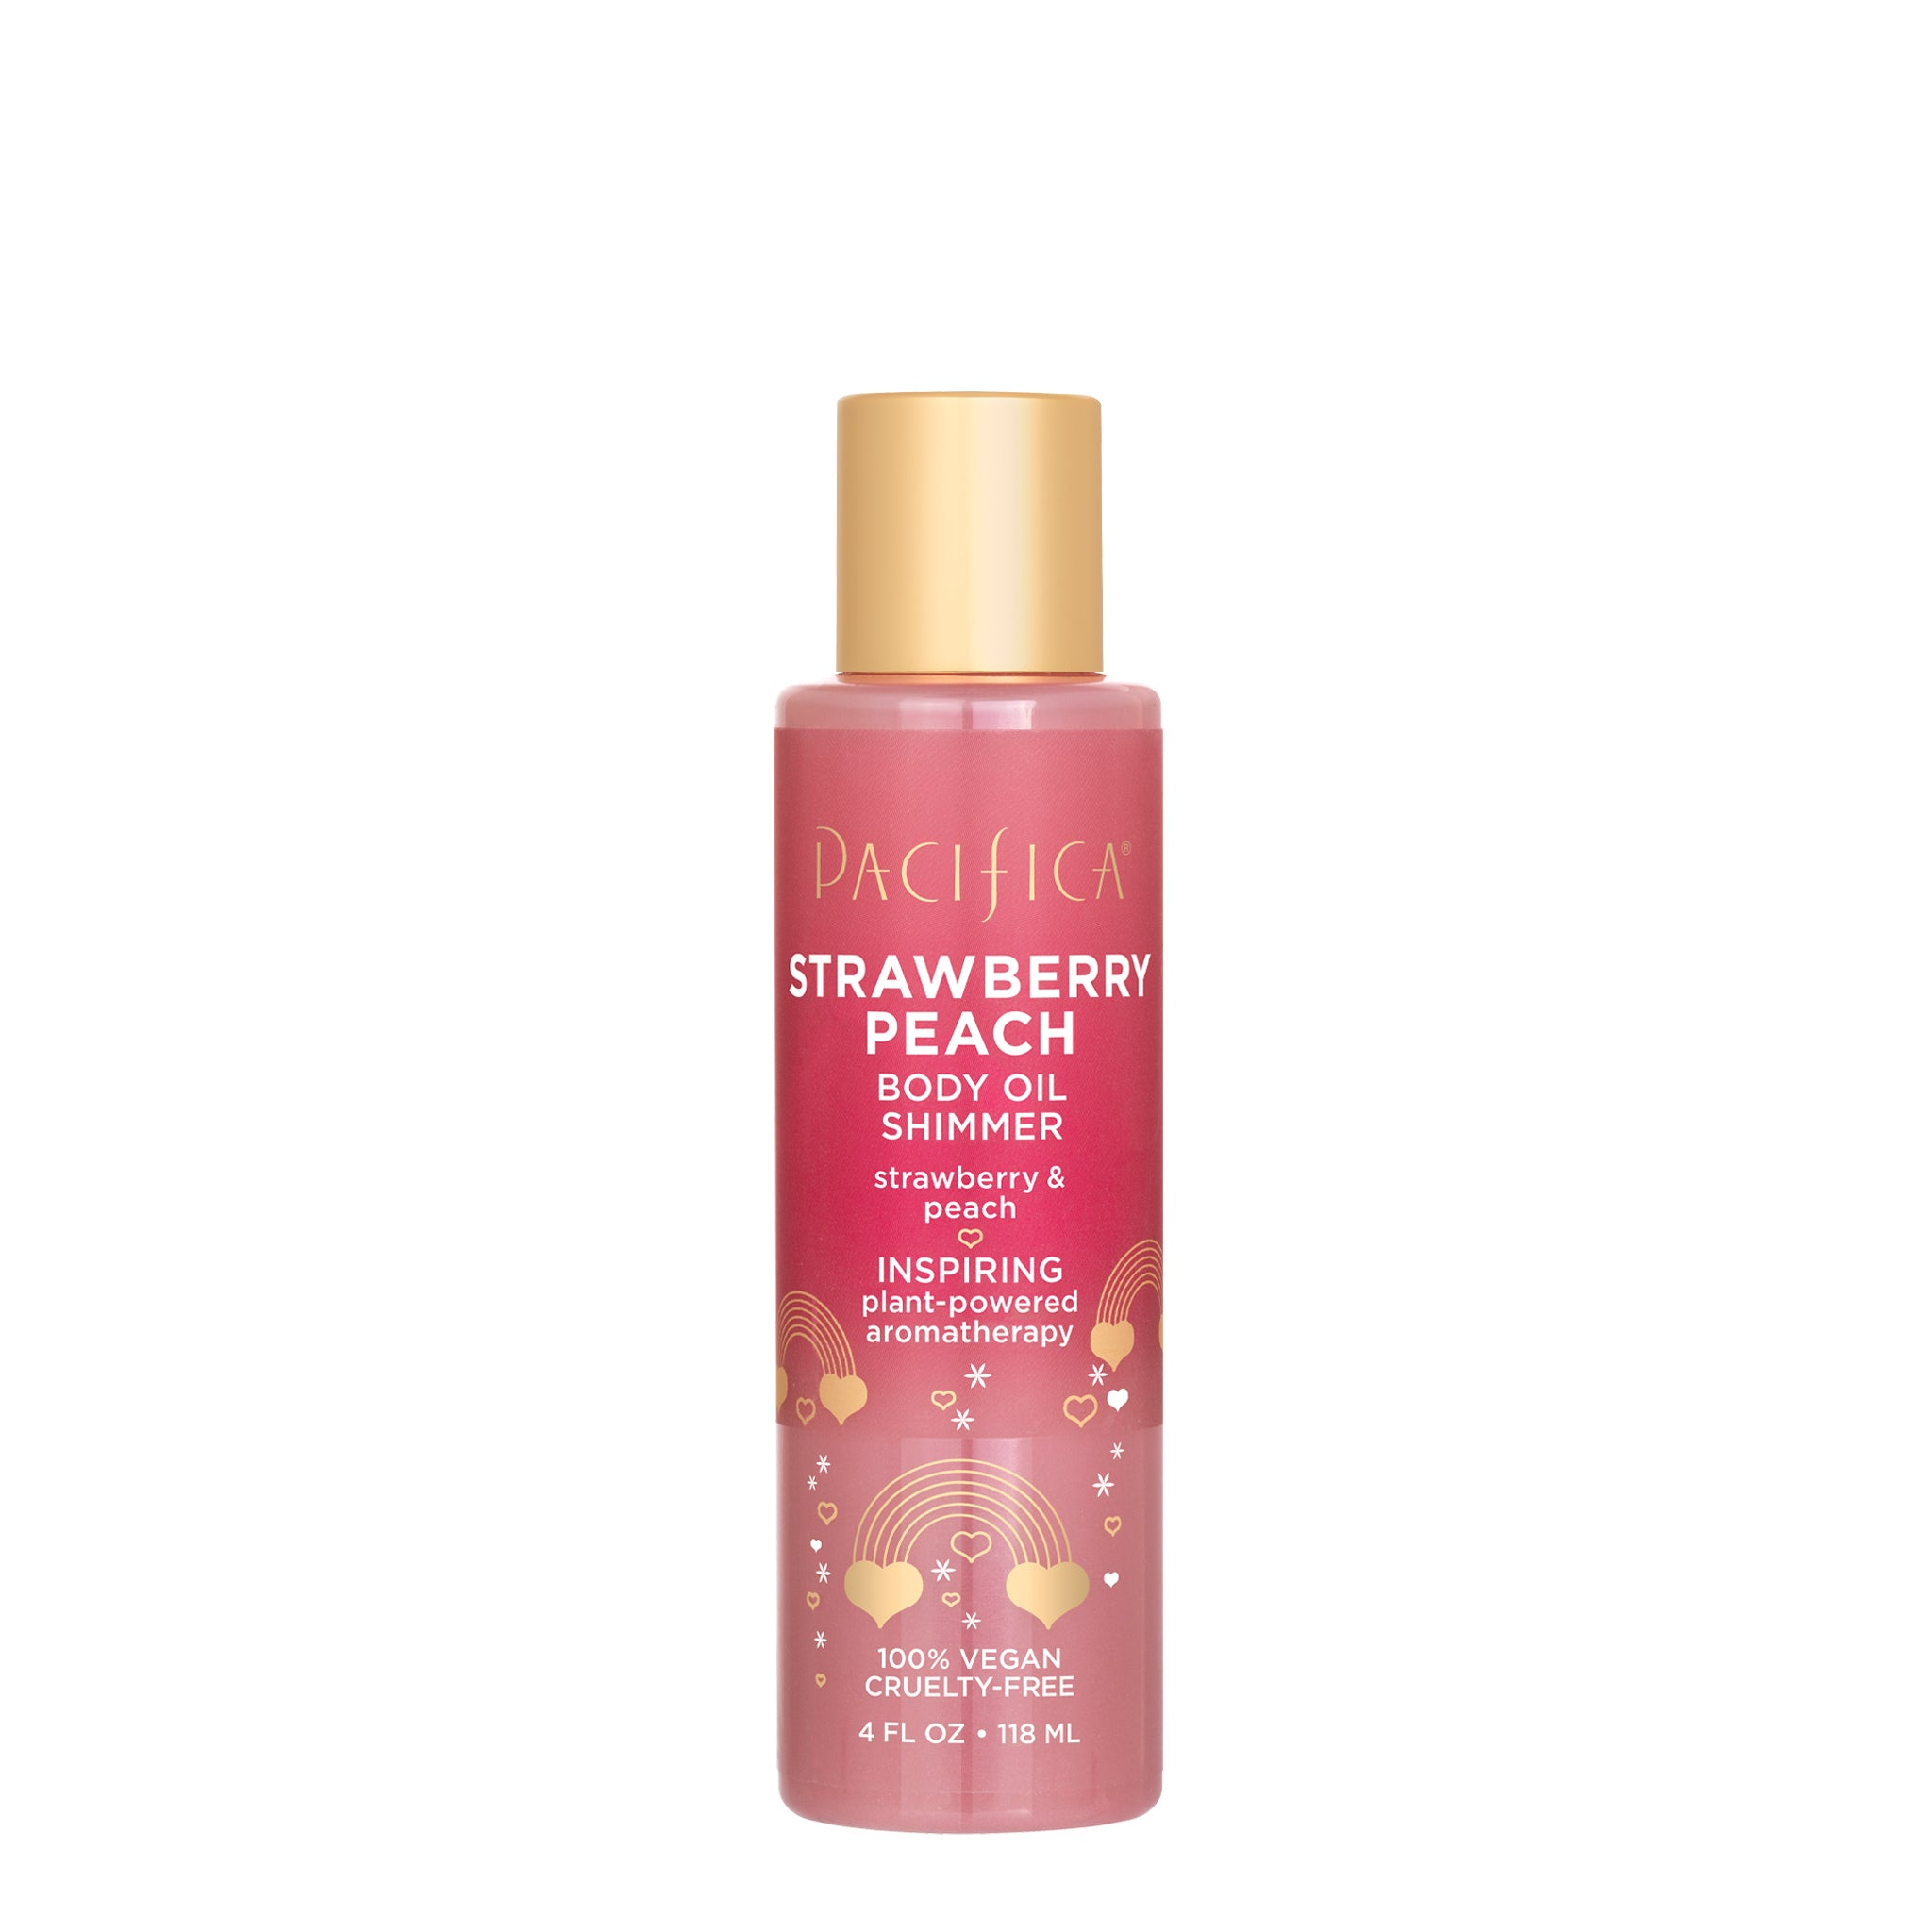 Strawberry Peach Body Oil Shimmer - Bath & Body - Pacifica Beauty